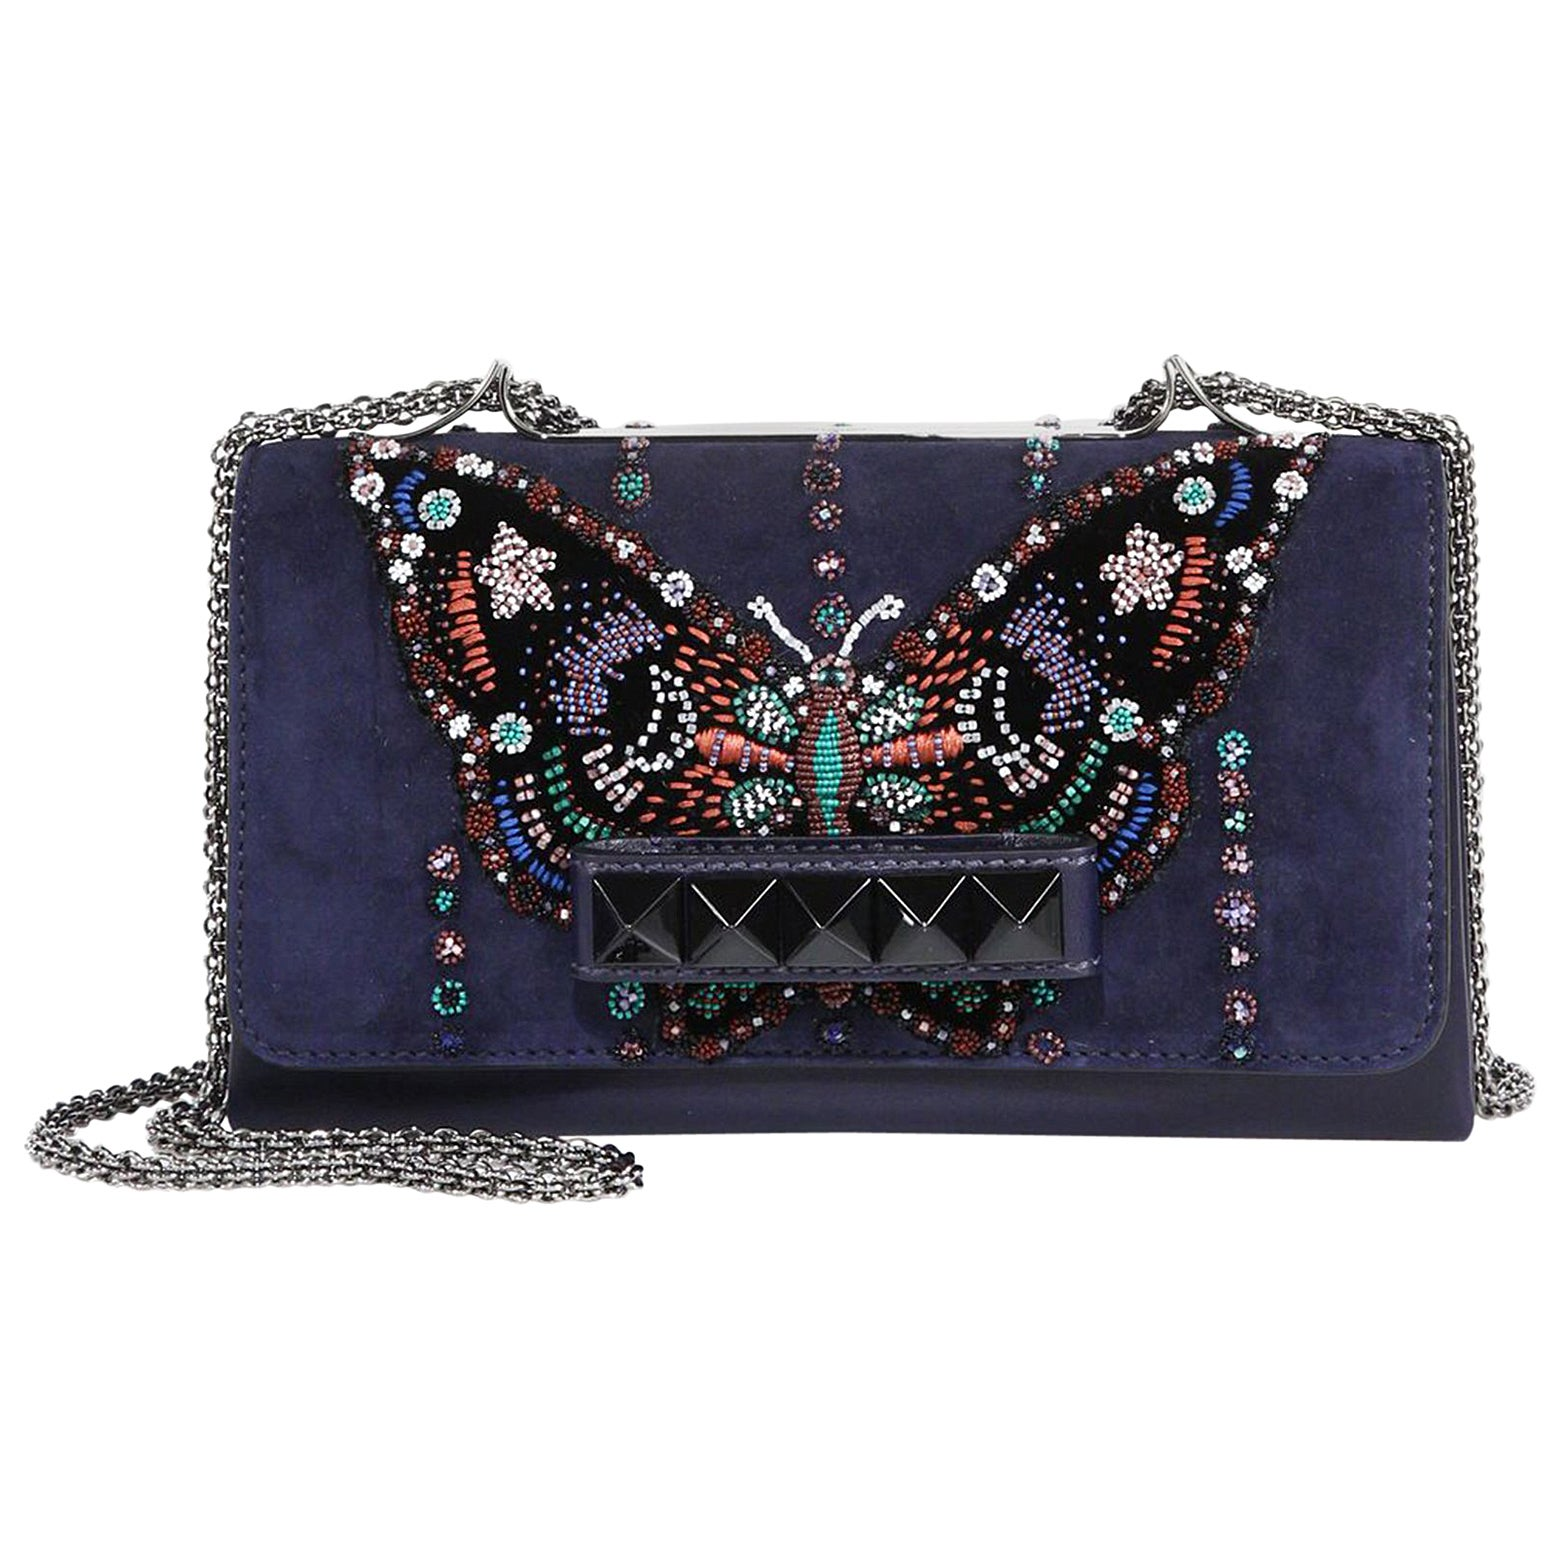 ffc50c00a4 Valentino Va Va Voom Beaded Butterfly Suede Shoulder Bag at 1stdibs